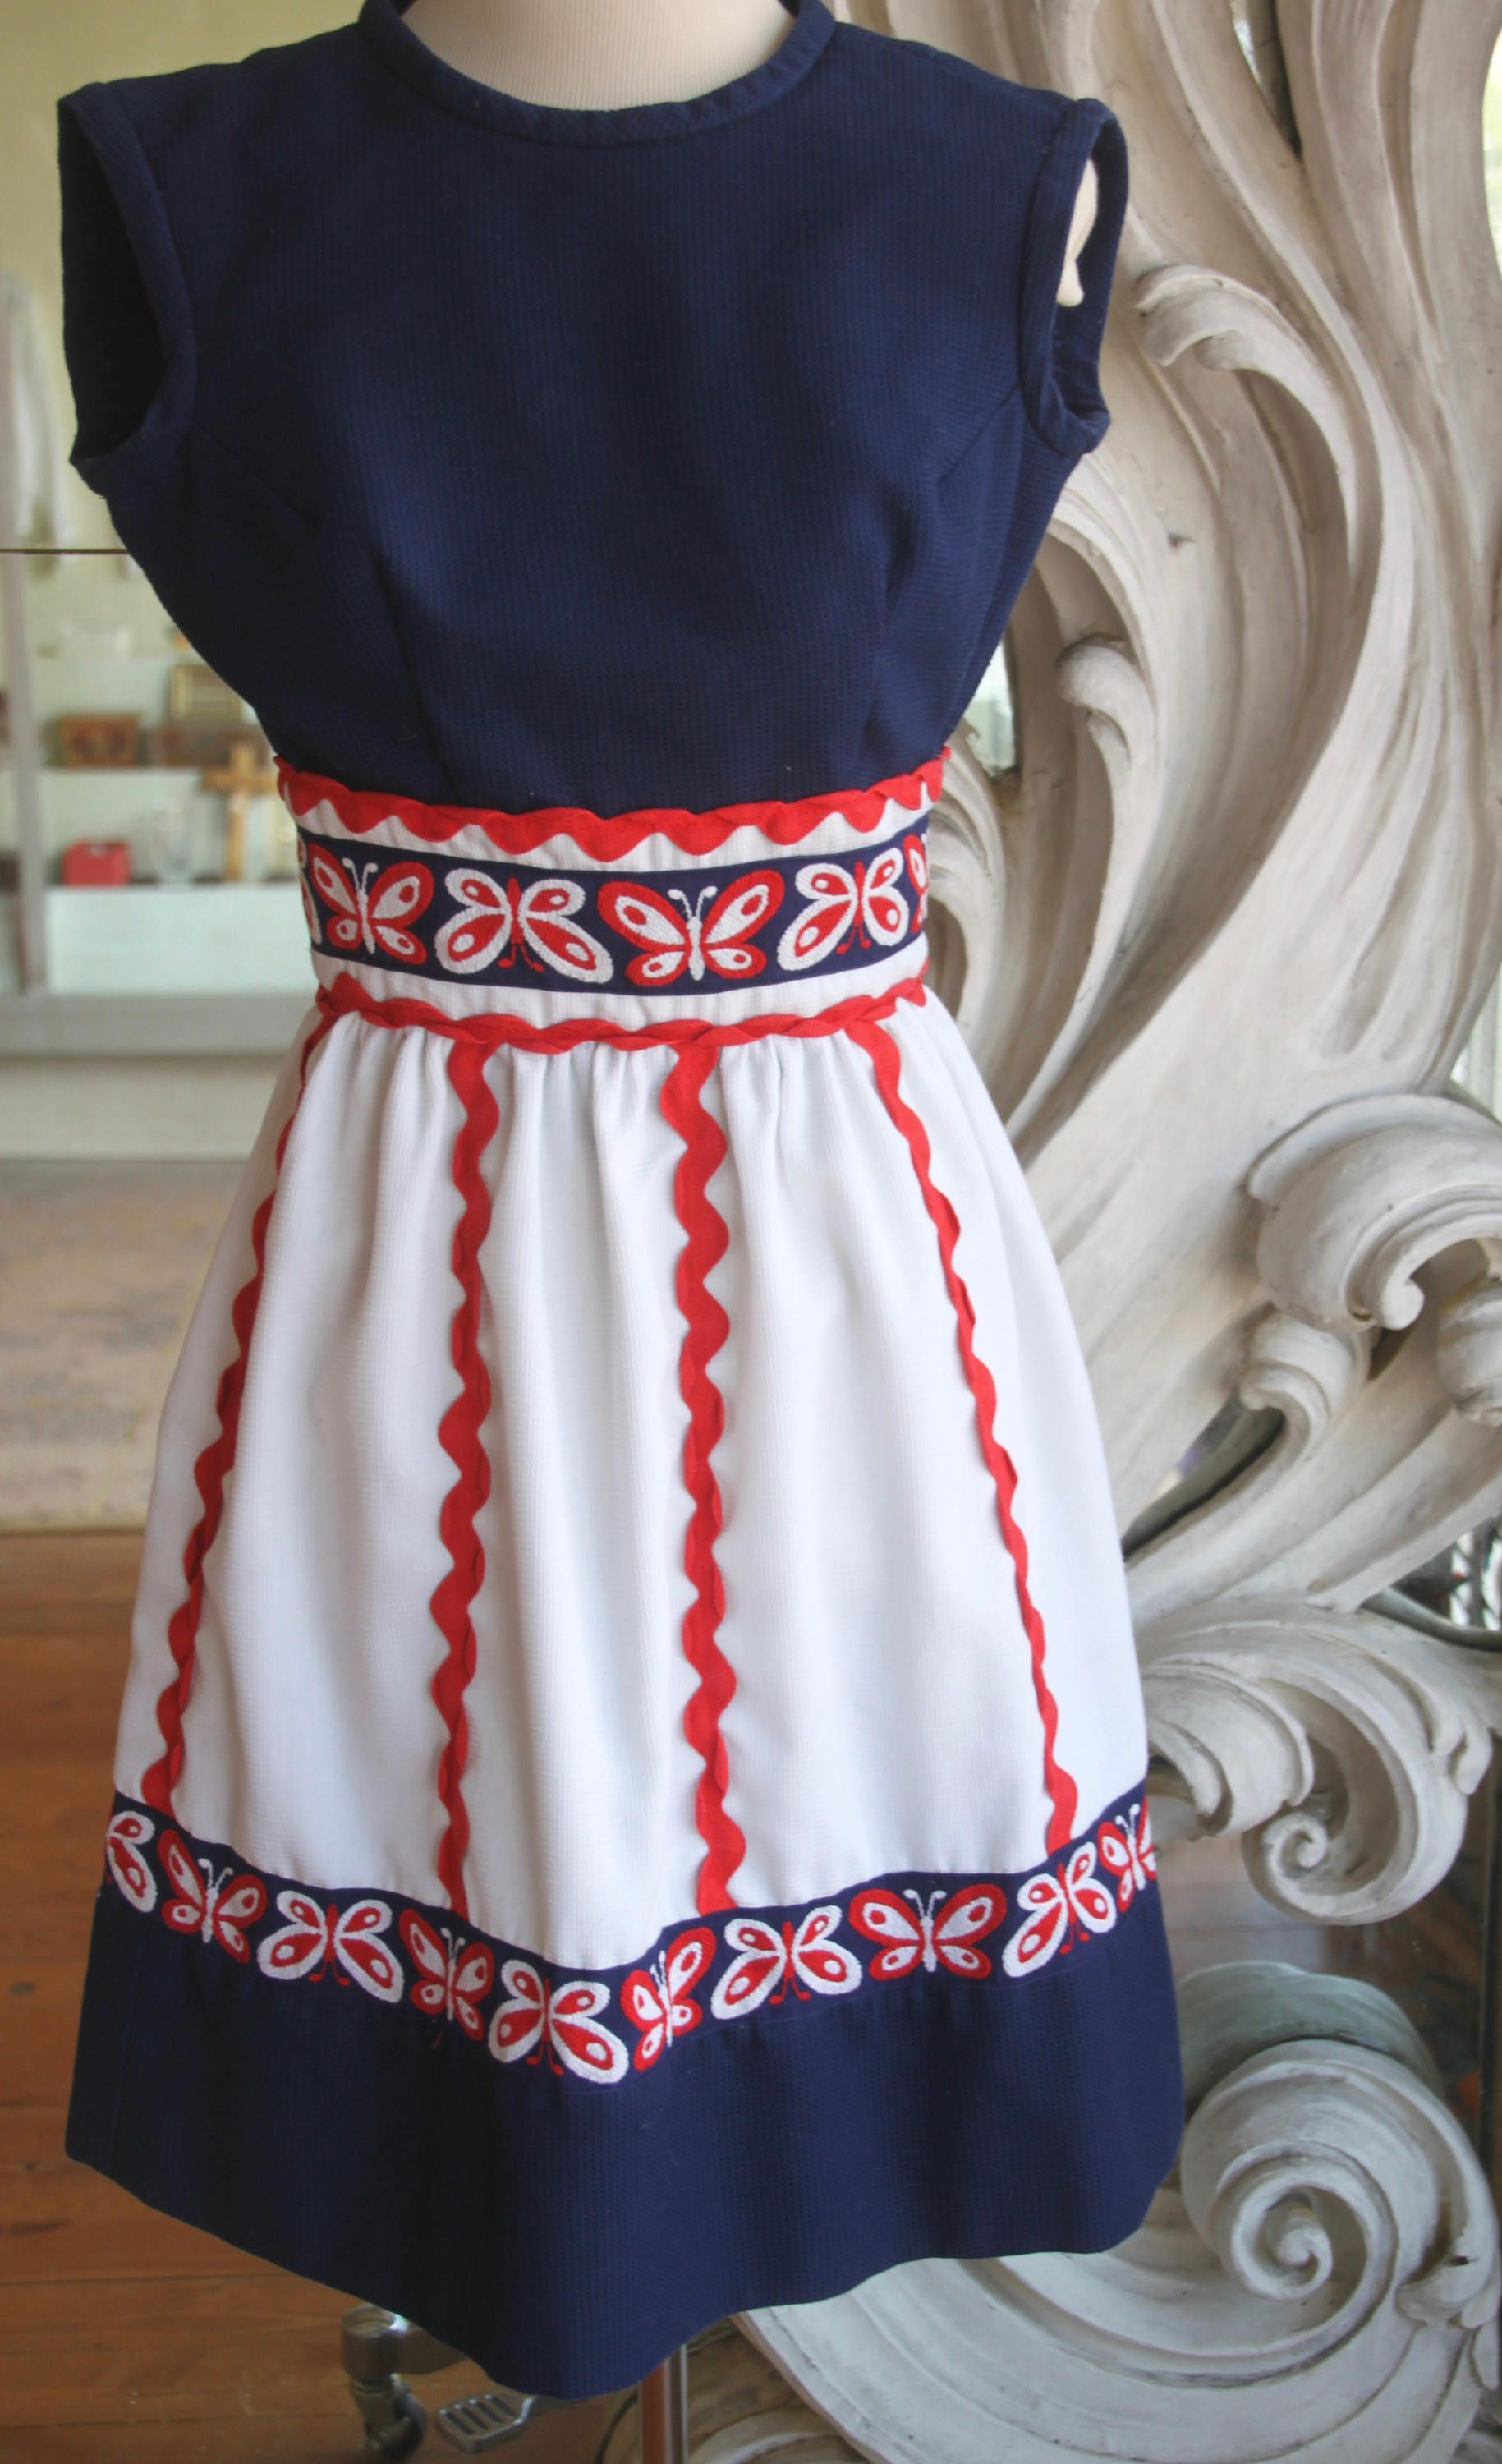 8d347d76805a Vintage 1960s Red, White, & Blue Summer Mini Dress by Howard Wolf 32 Bust  by SweetLittleVillage on Etsy